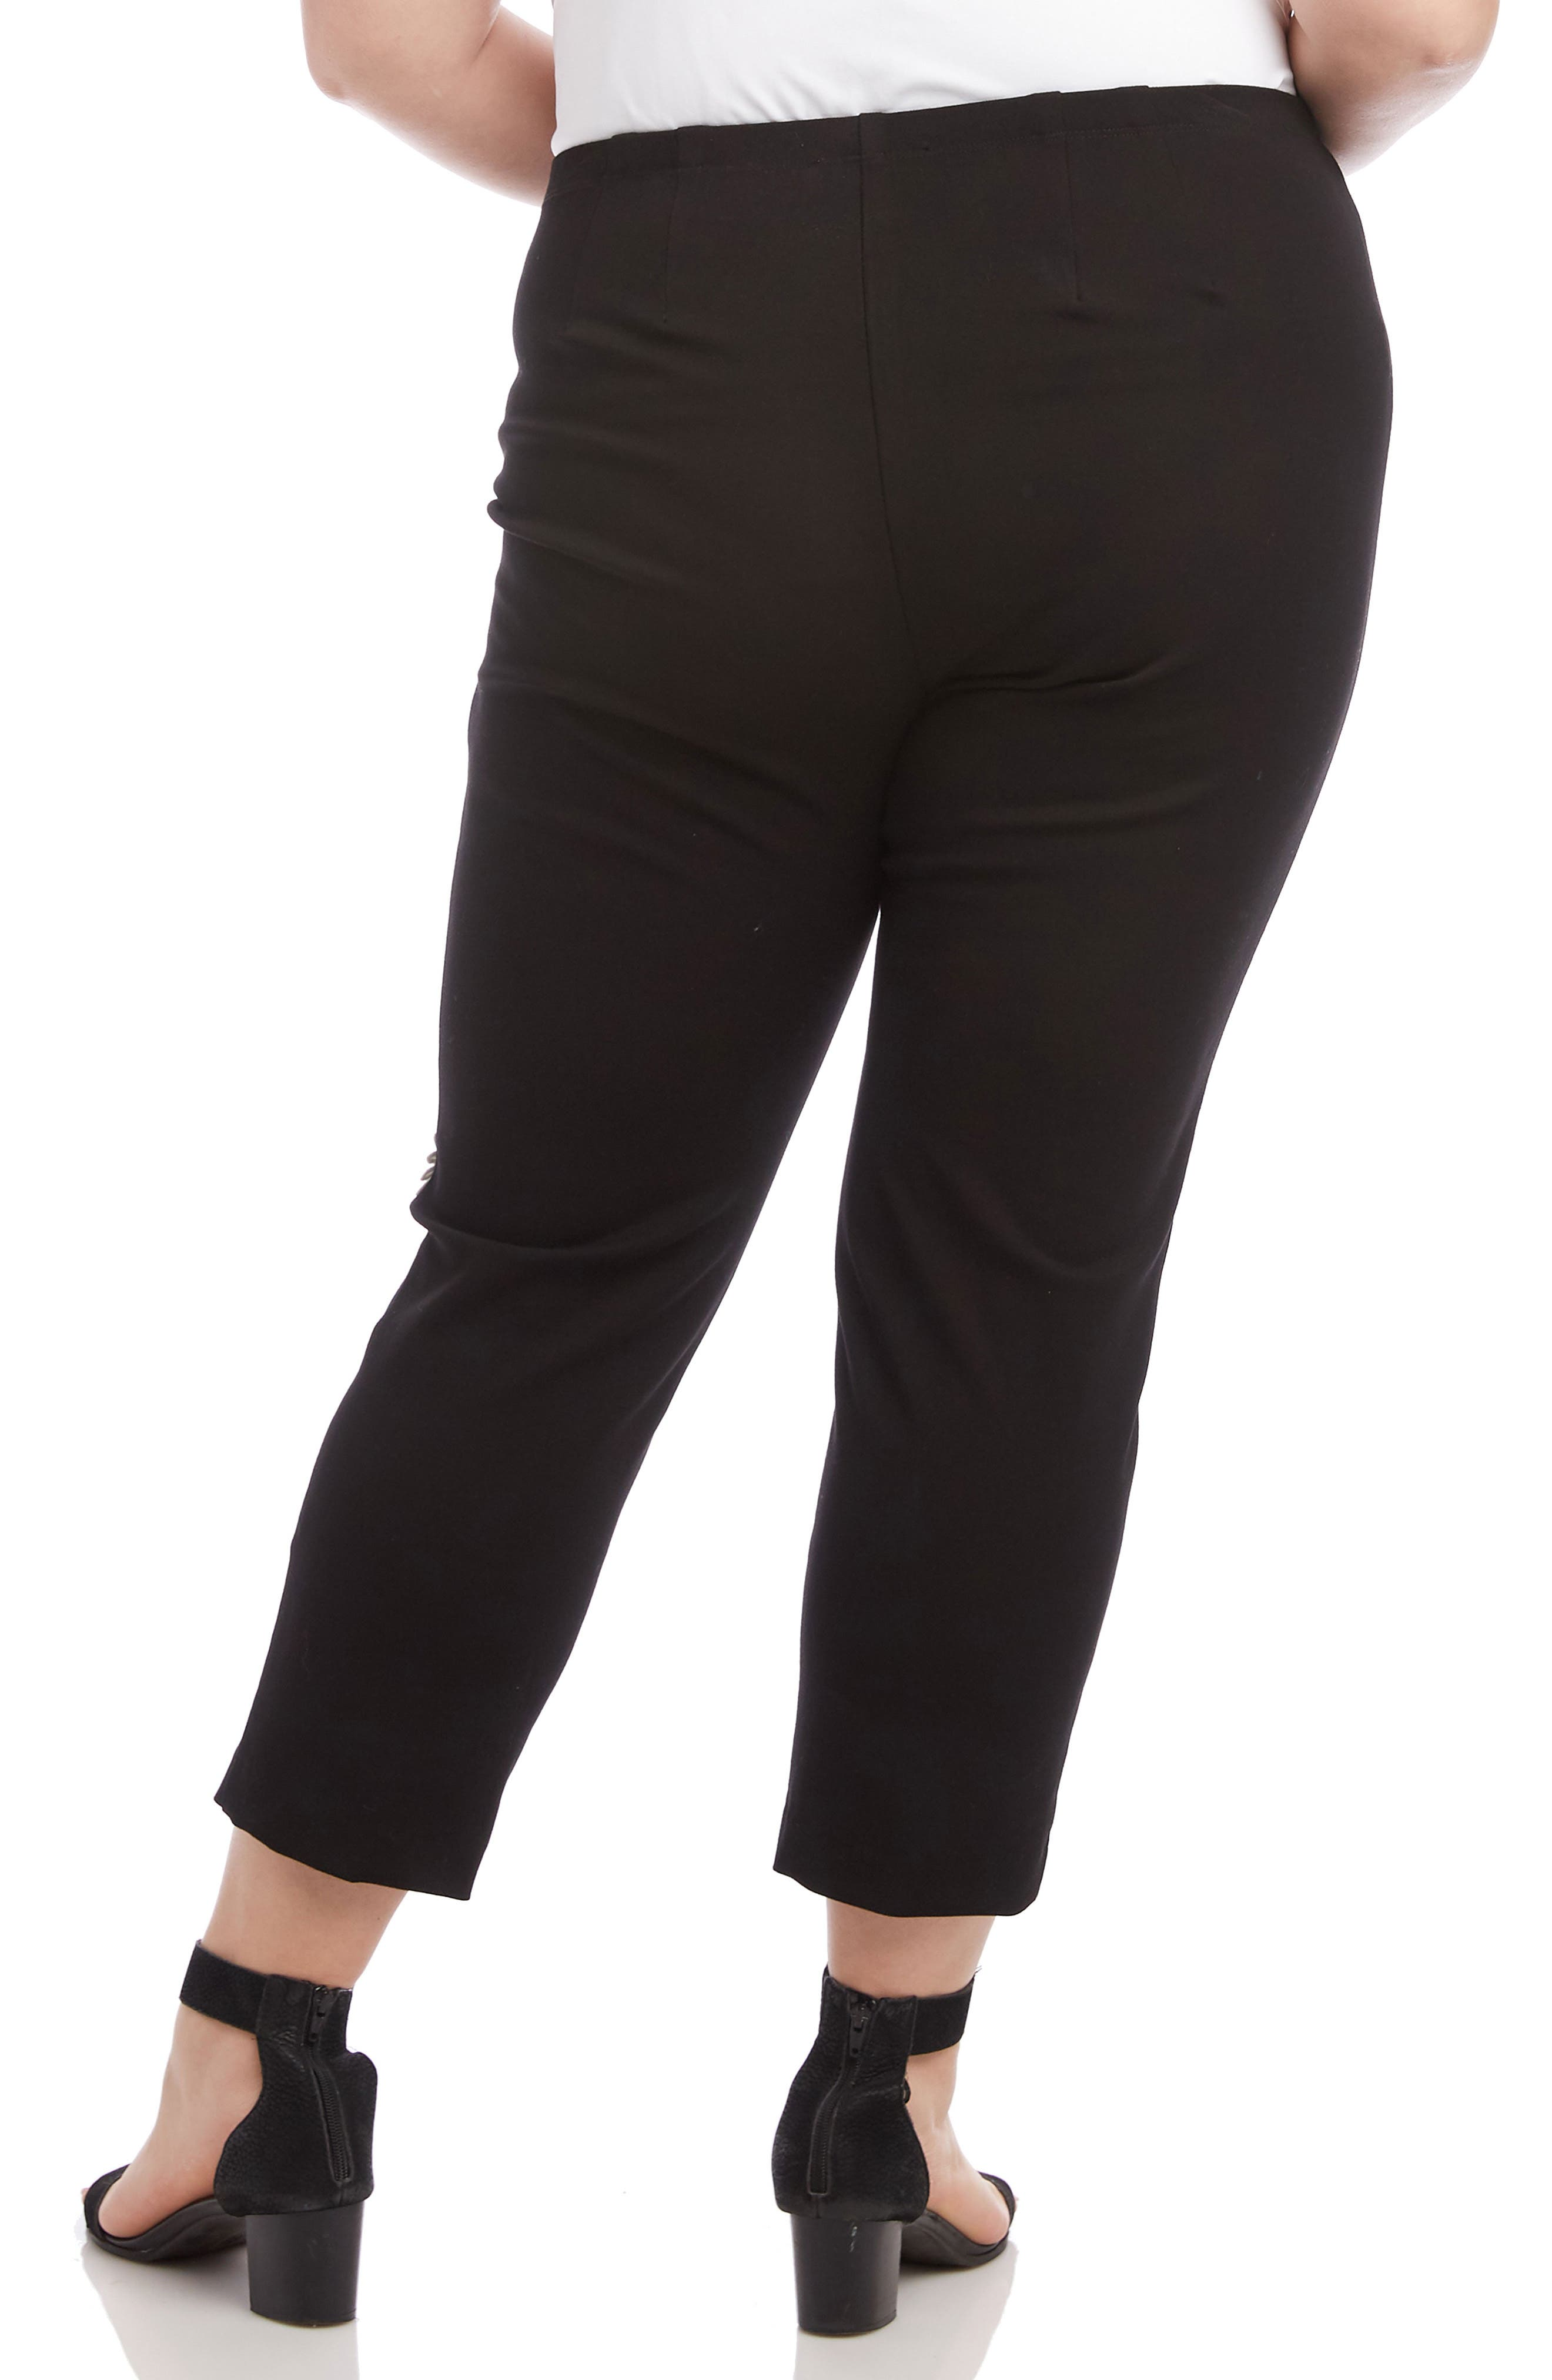 KAREN KANE, Piper Daisy Ankle Pants, Alternate thumbnail 2, color, BLACK